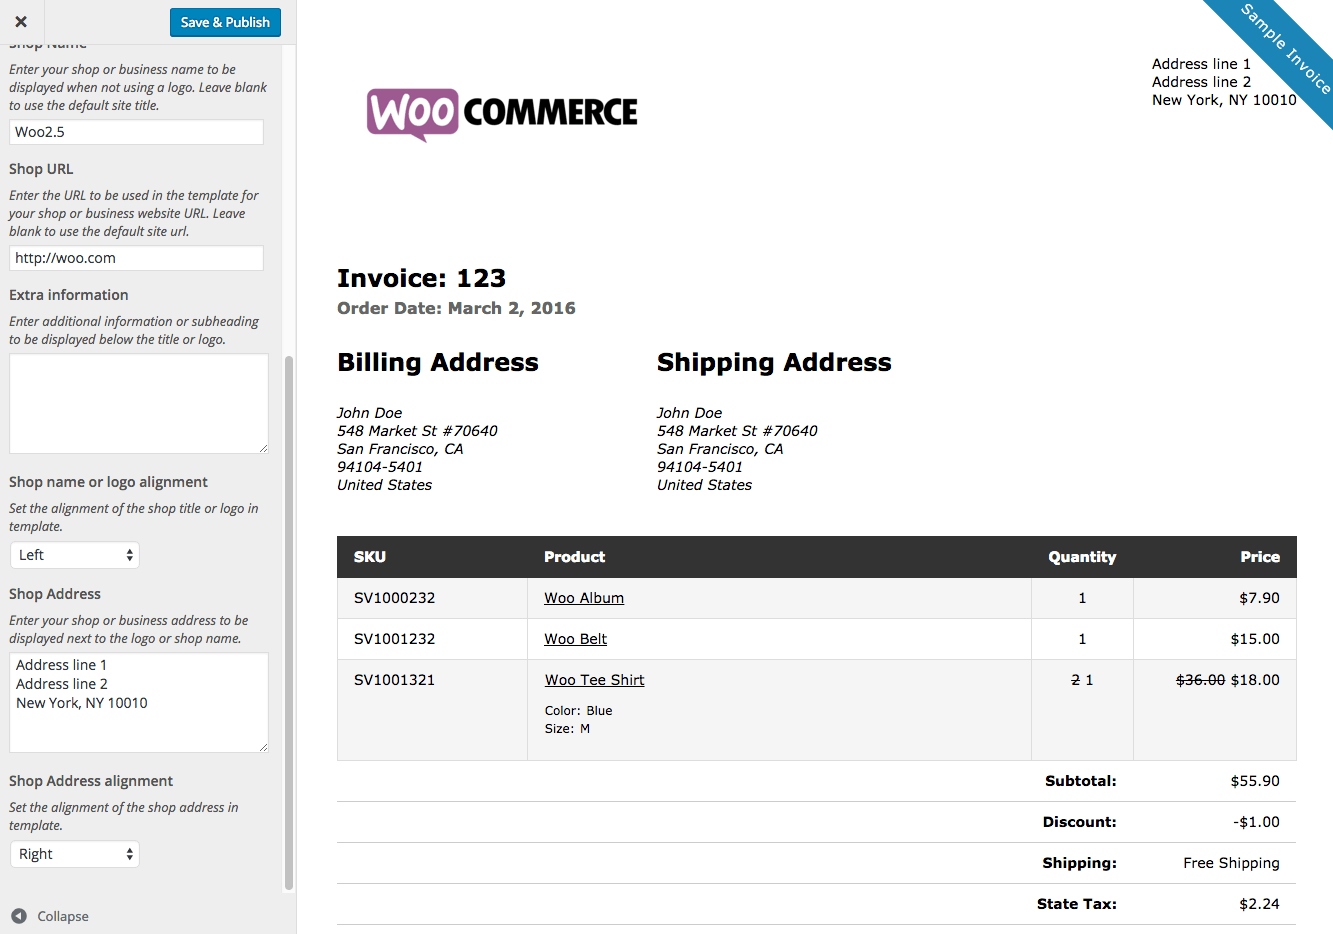 Hius  Gorgeous Woocommerce Print Invoices Amp Packing Lists  Woocommerce Docs With Fair Woocommerce Print Invoices  Packing Lists Customizer With Archaic Automotive Repair Invoice Software Also Quick Books Invoice In Addition Pdf Invoice Generator And Photographer Invoice Template As Well As Invoice Finance Company Additionally Invoice Format Template From Docswoocommercecom With Hius  Fair Woocommerce Print Invoices Amp Packing Lists  Woocommerce Docs With Archaic Woocommerce Print Invoices  Packing Lists Customizer And Gorgeous Automotive Repair Invoice Software Also Quick Books Invoice In Addition Pdf Invoice Generator From Docswoocommercecom